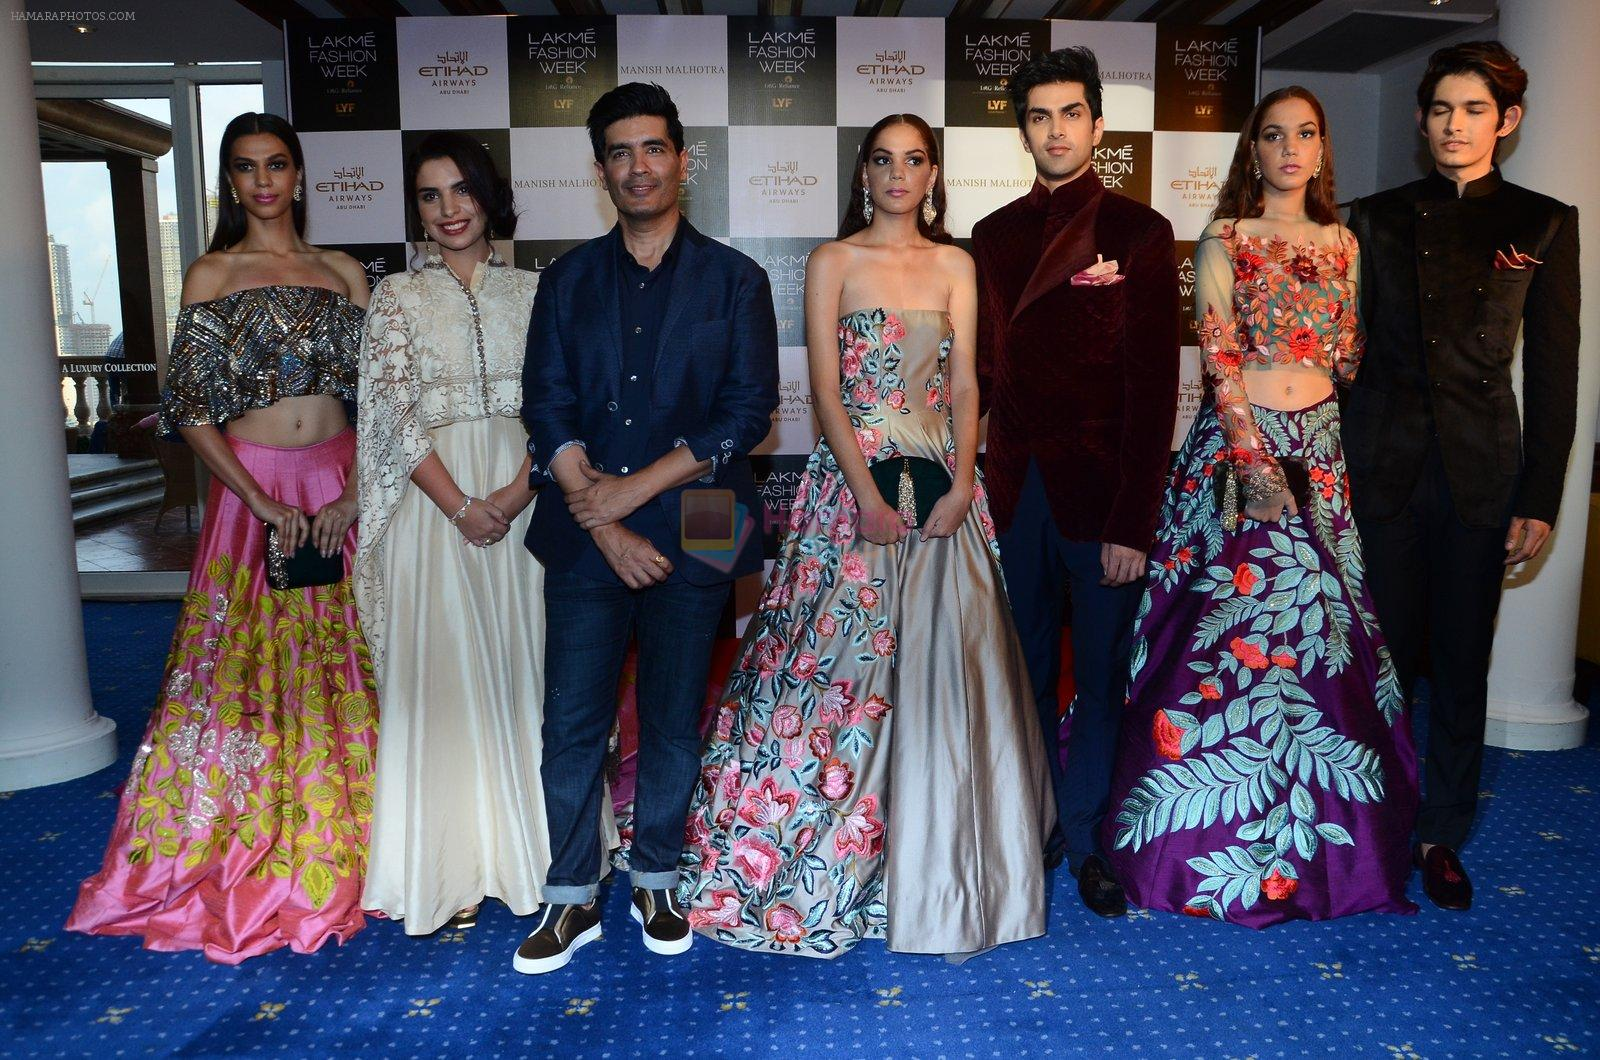 Manish Malhotra Lakme preview in Mumbai on 16th AUg 2016